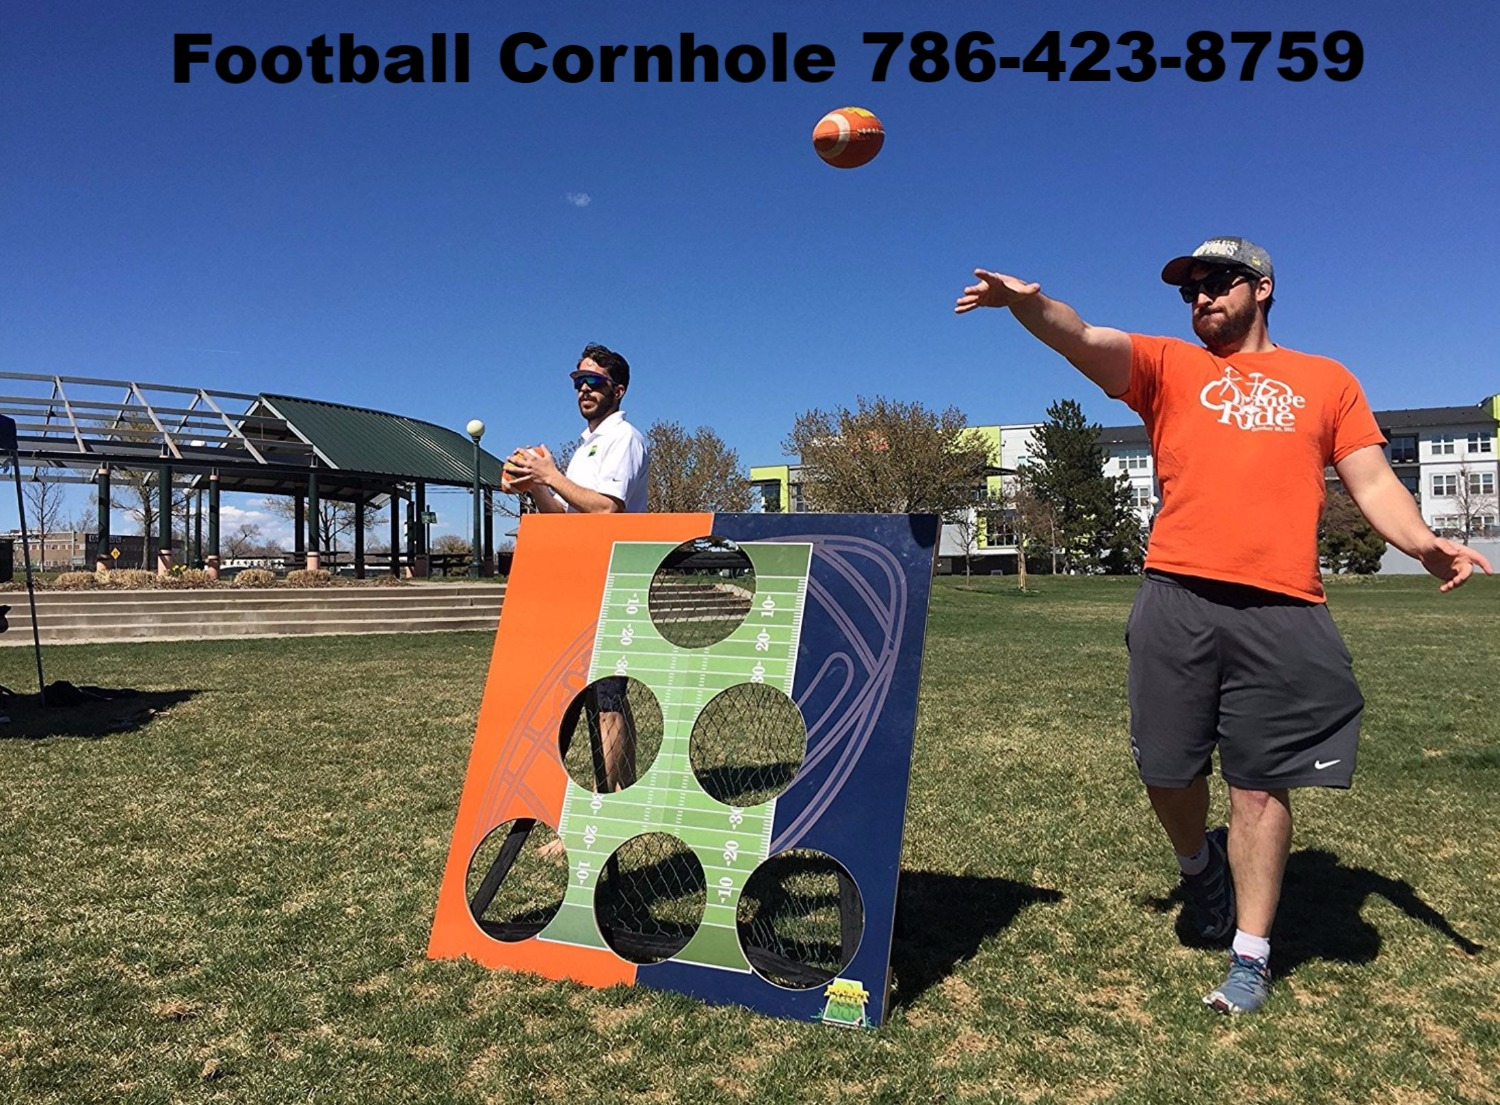 Football Cornhole - Outdoor Rentals - West Palm Beach, FL 786-423-8759_edited